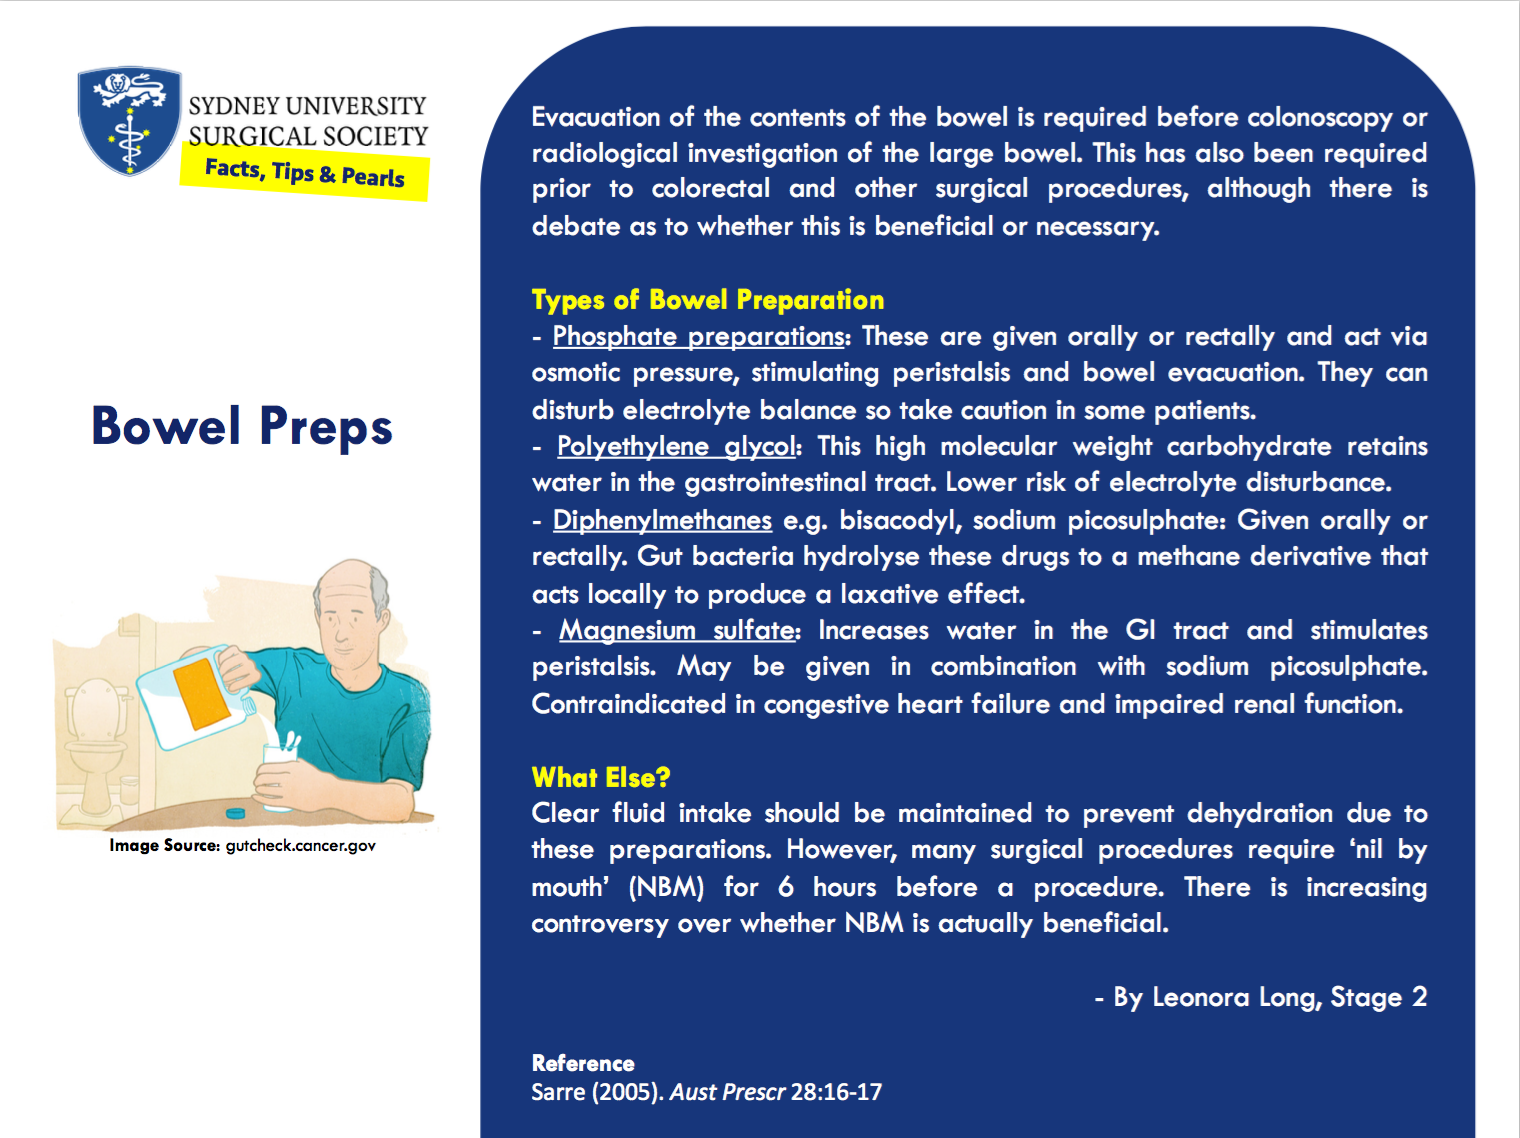 Text summarising the types of bowel preparations used in endoscopic and some surgical procedures